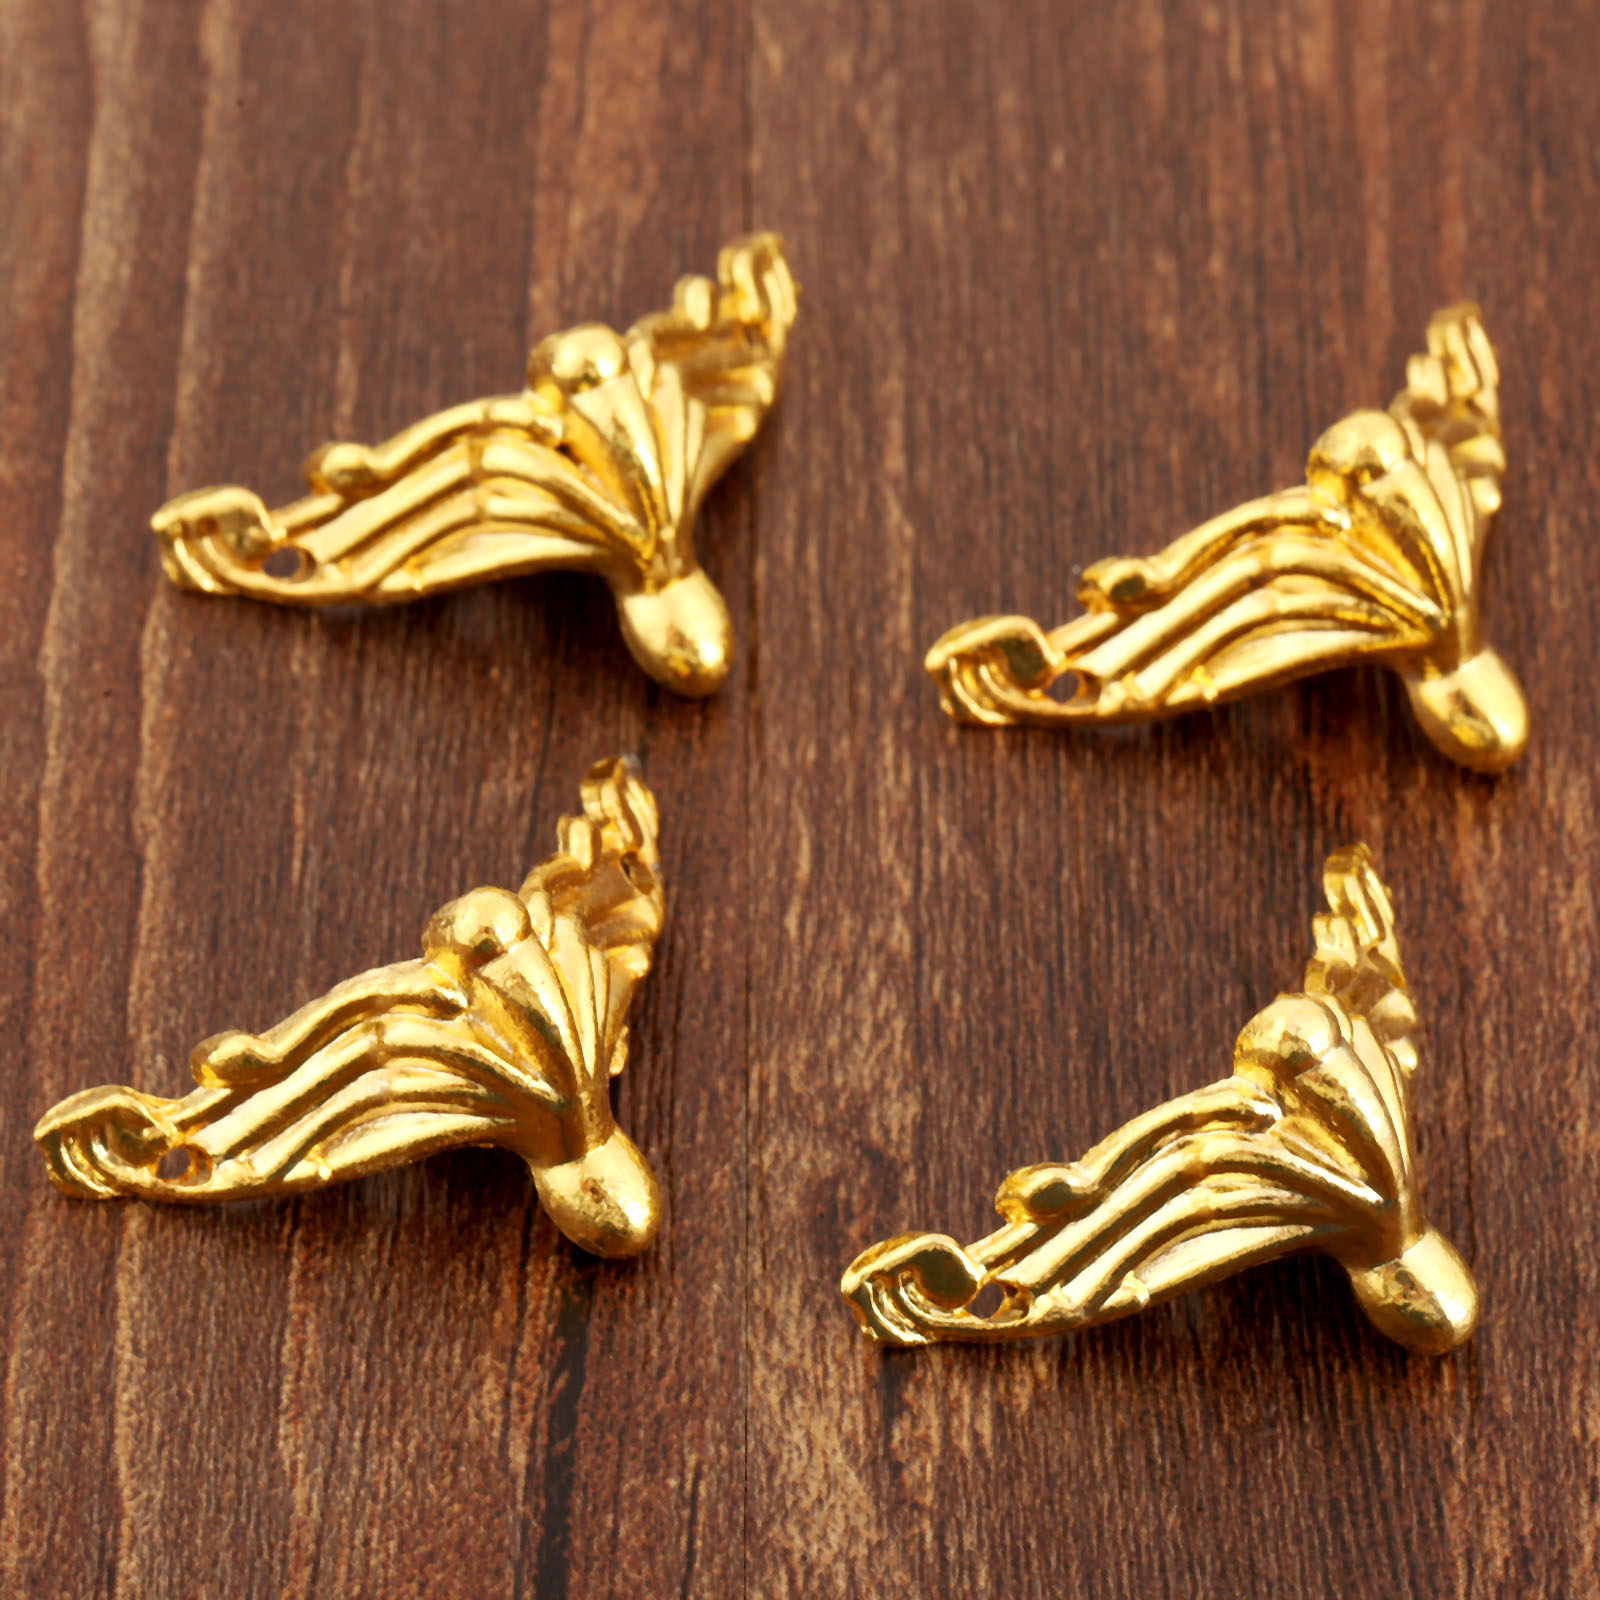 4Pcs Gold Decorative Corner Bracket For Furniture Jewelry Gift Wooden Box Feet Furniture Foot Corner Protector 26*19mm